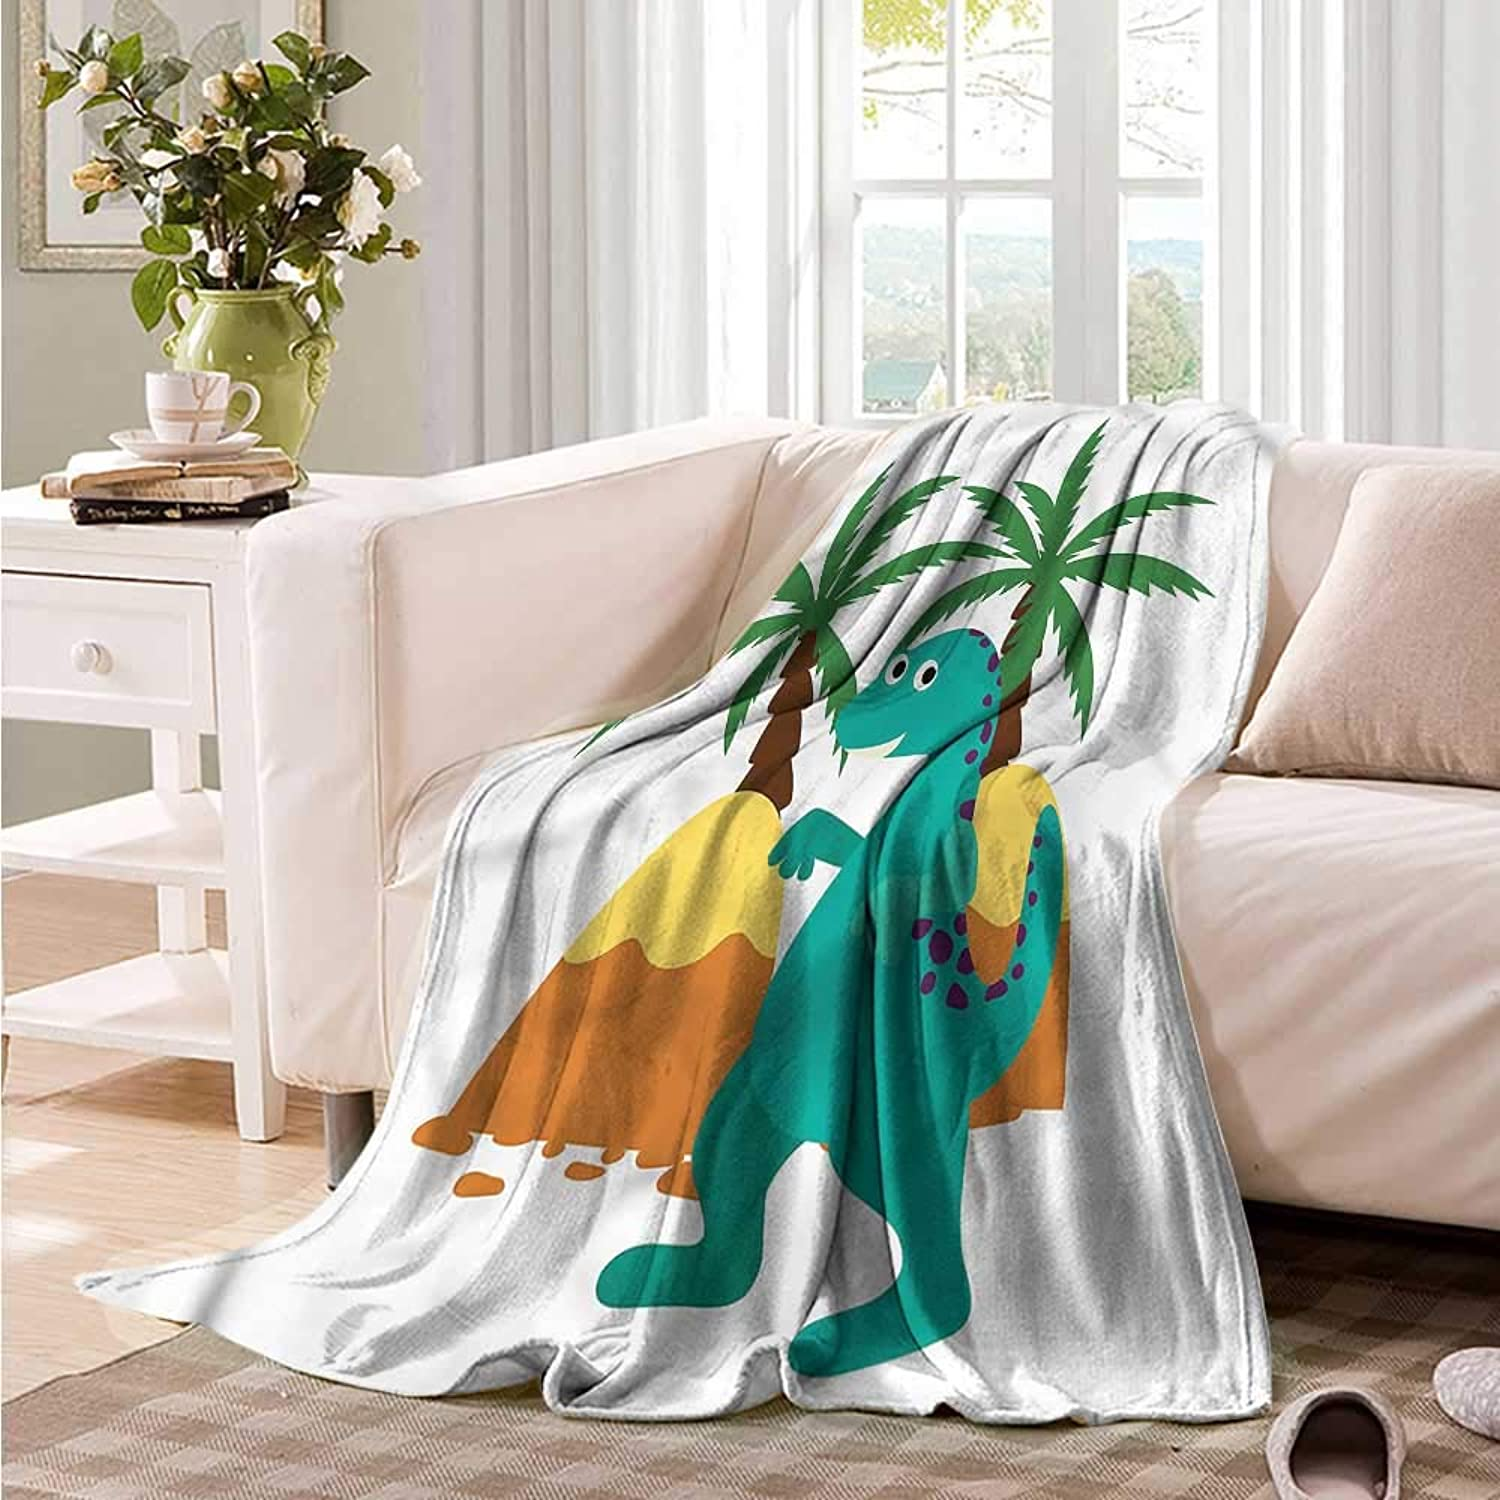 Oncegod Flannel Blanket Dinosaur Party Prehistoric Monster Camping Throw,Office wrap 60  W x 51  L